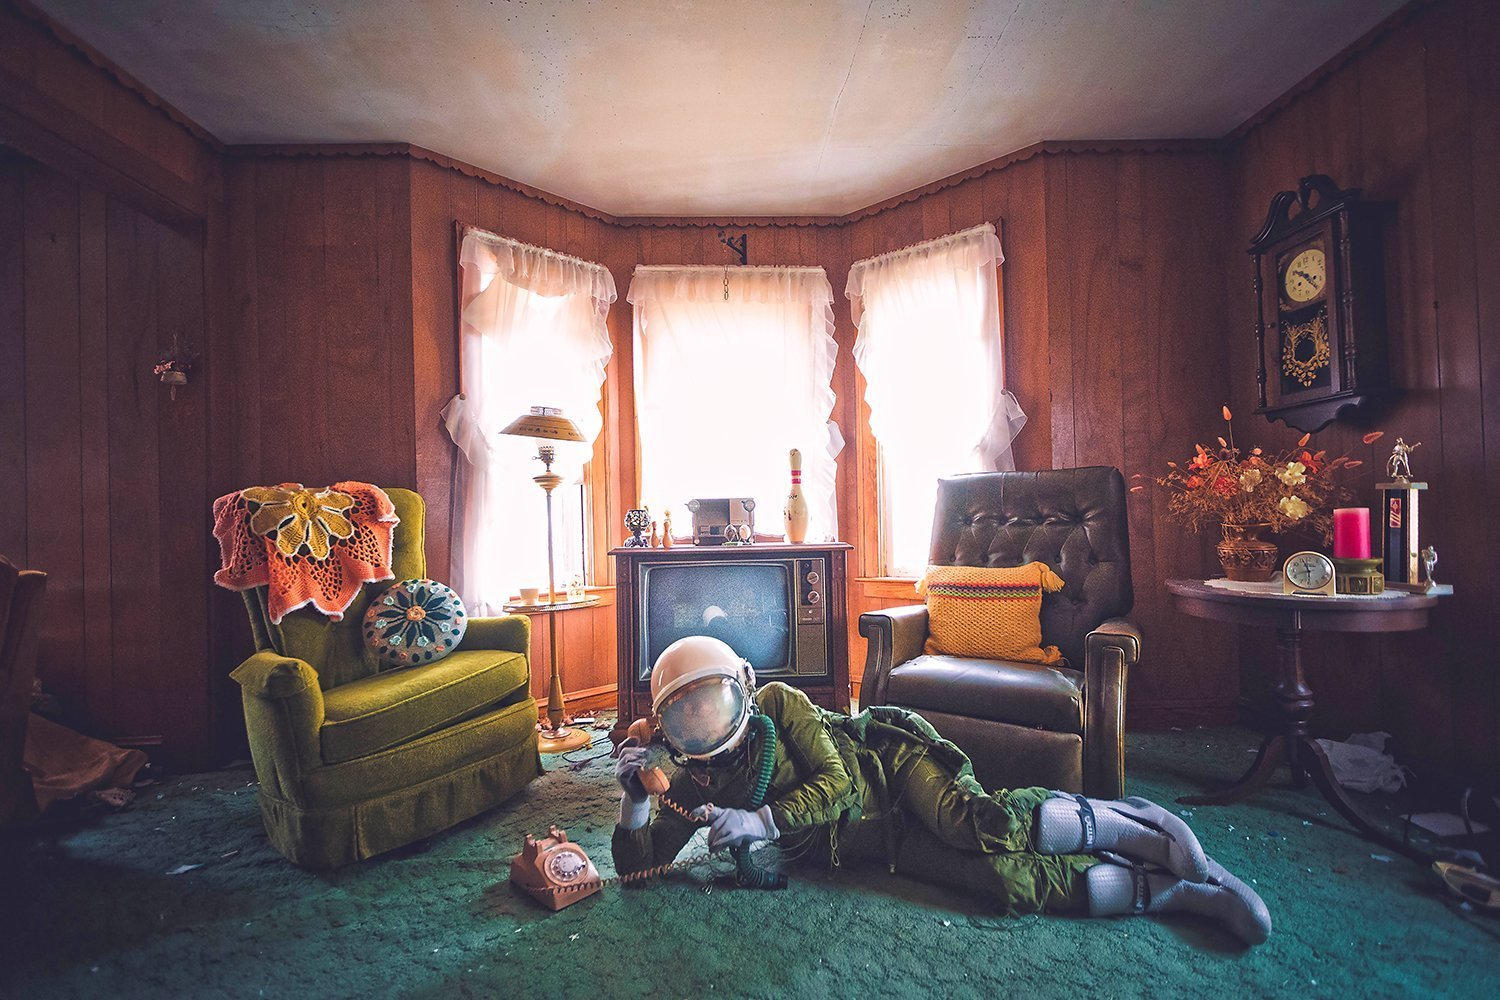 Karen Jerzyk's Surreal Photography The Lonely Astronaut 2